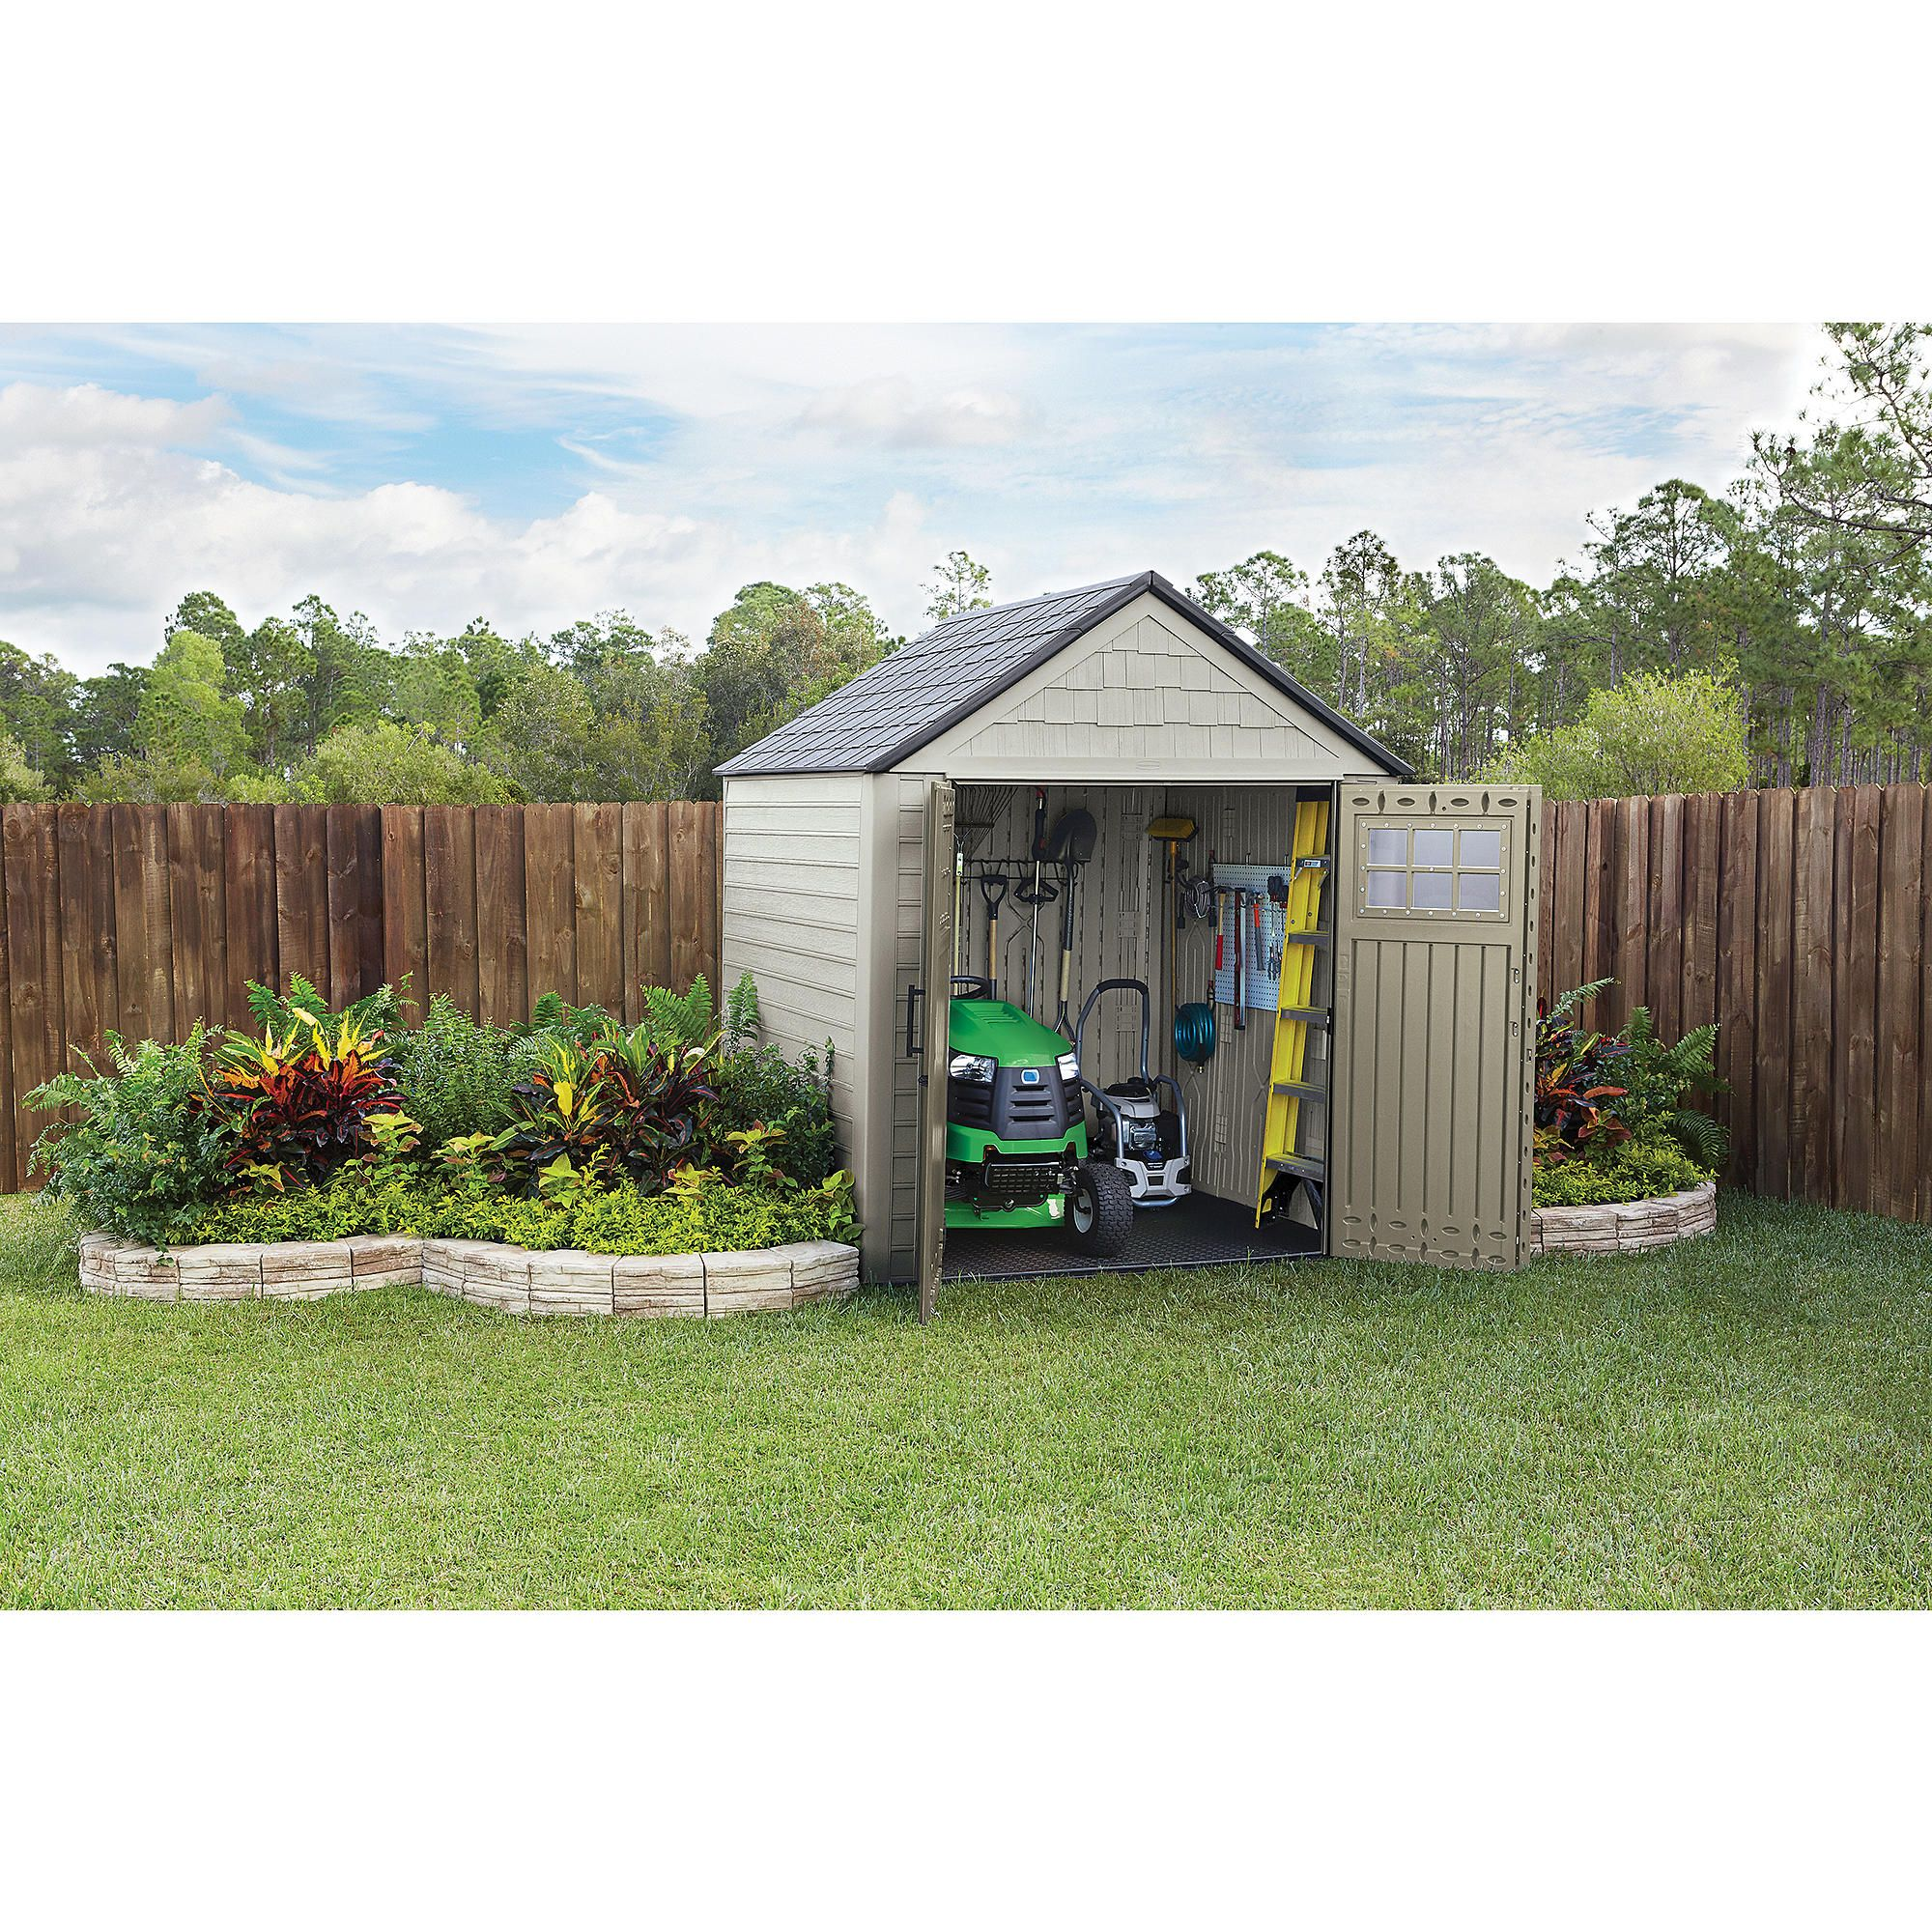 Attractive and practical the Rubbermaid 7 x7 Outdoor Resin Storage